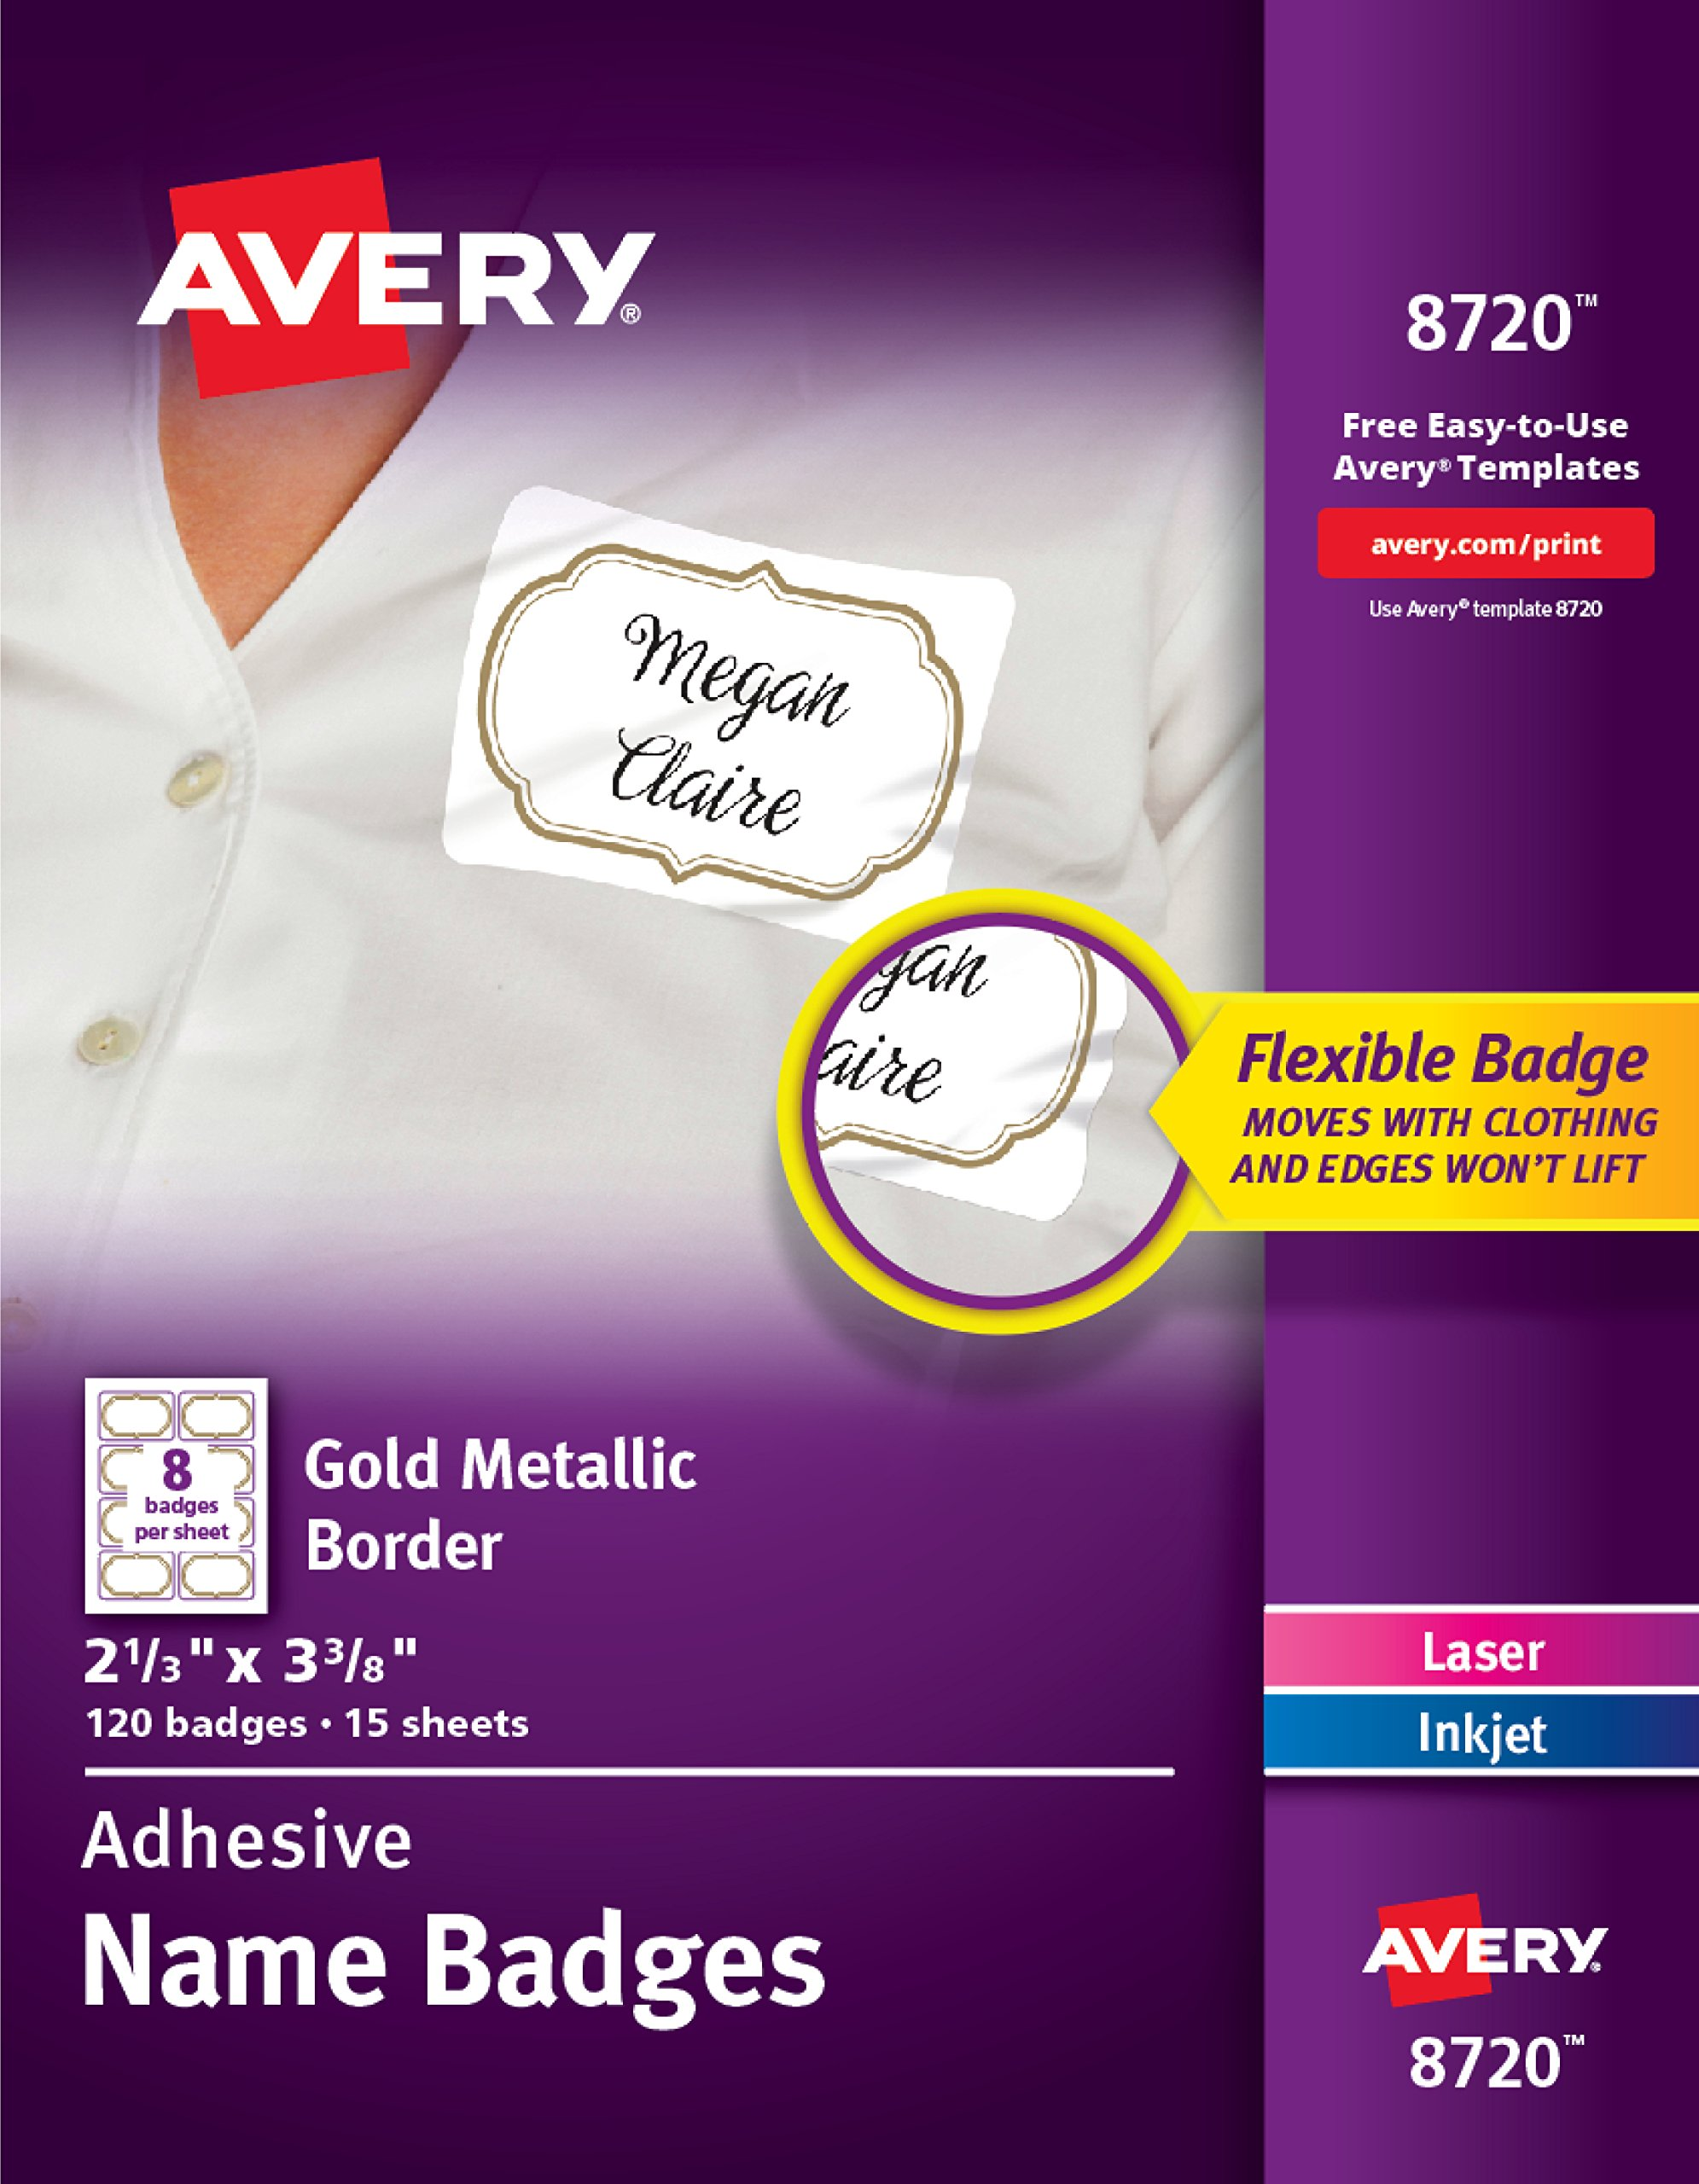 avery self adhesive removable name tag labels gold metallic border